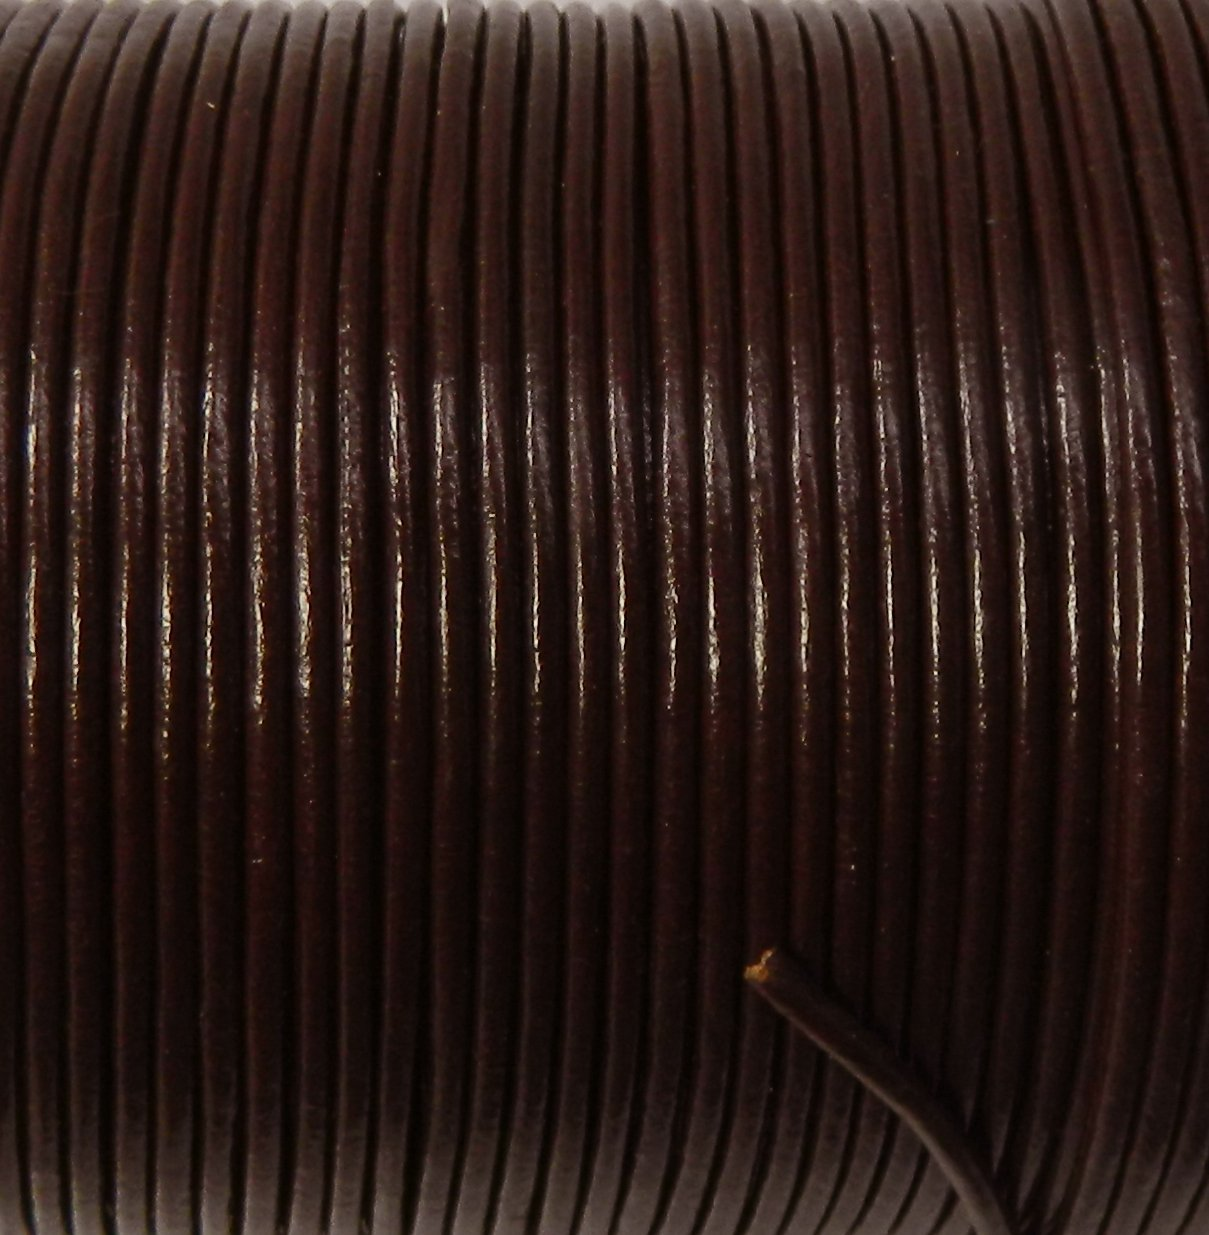 Imported India Leather Cord 2mm Round 5 Yards Medium Brown